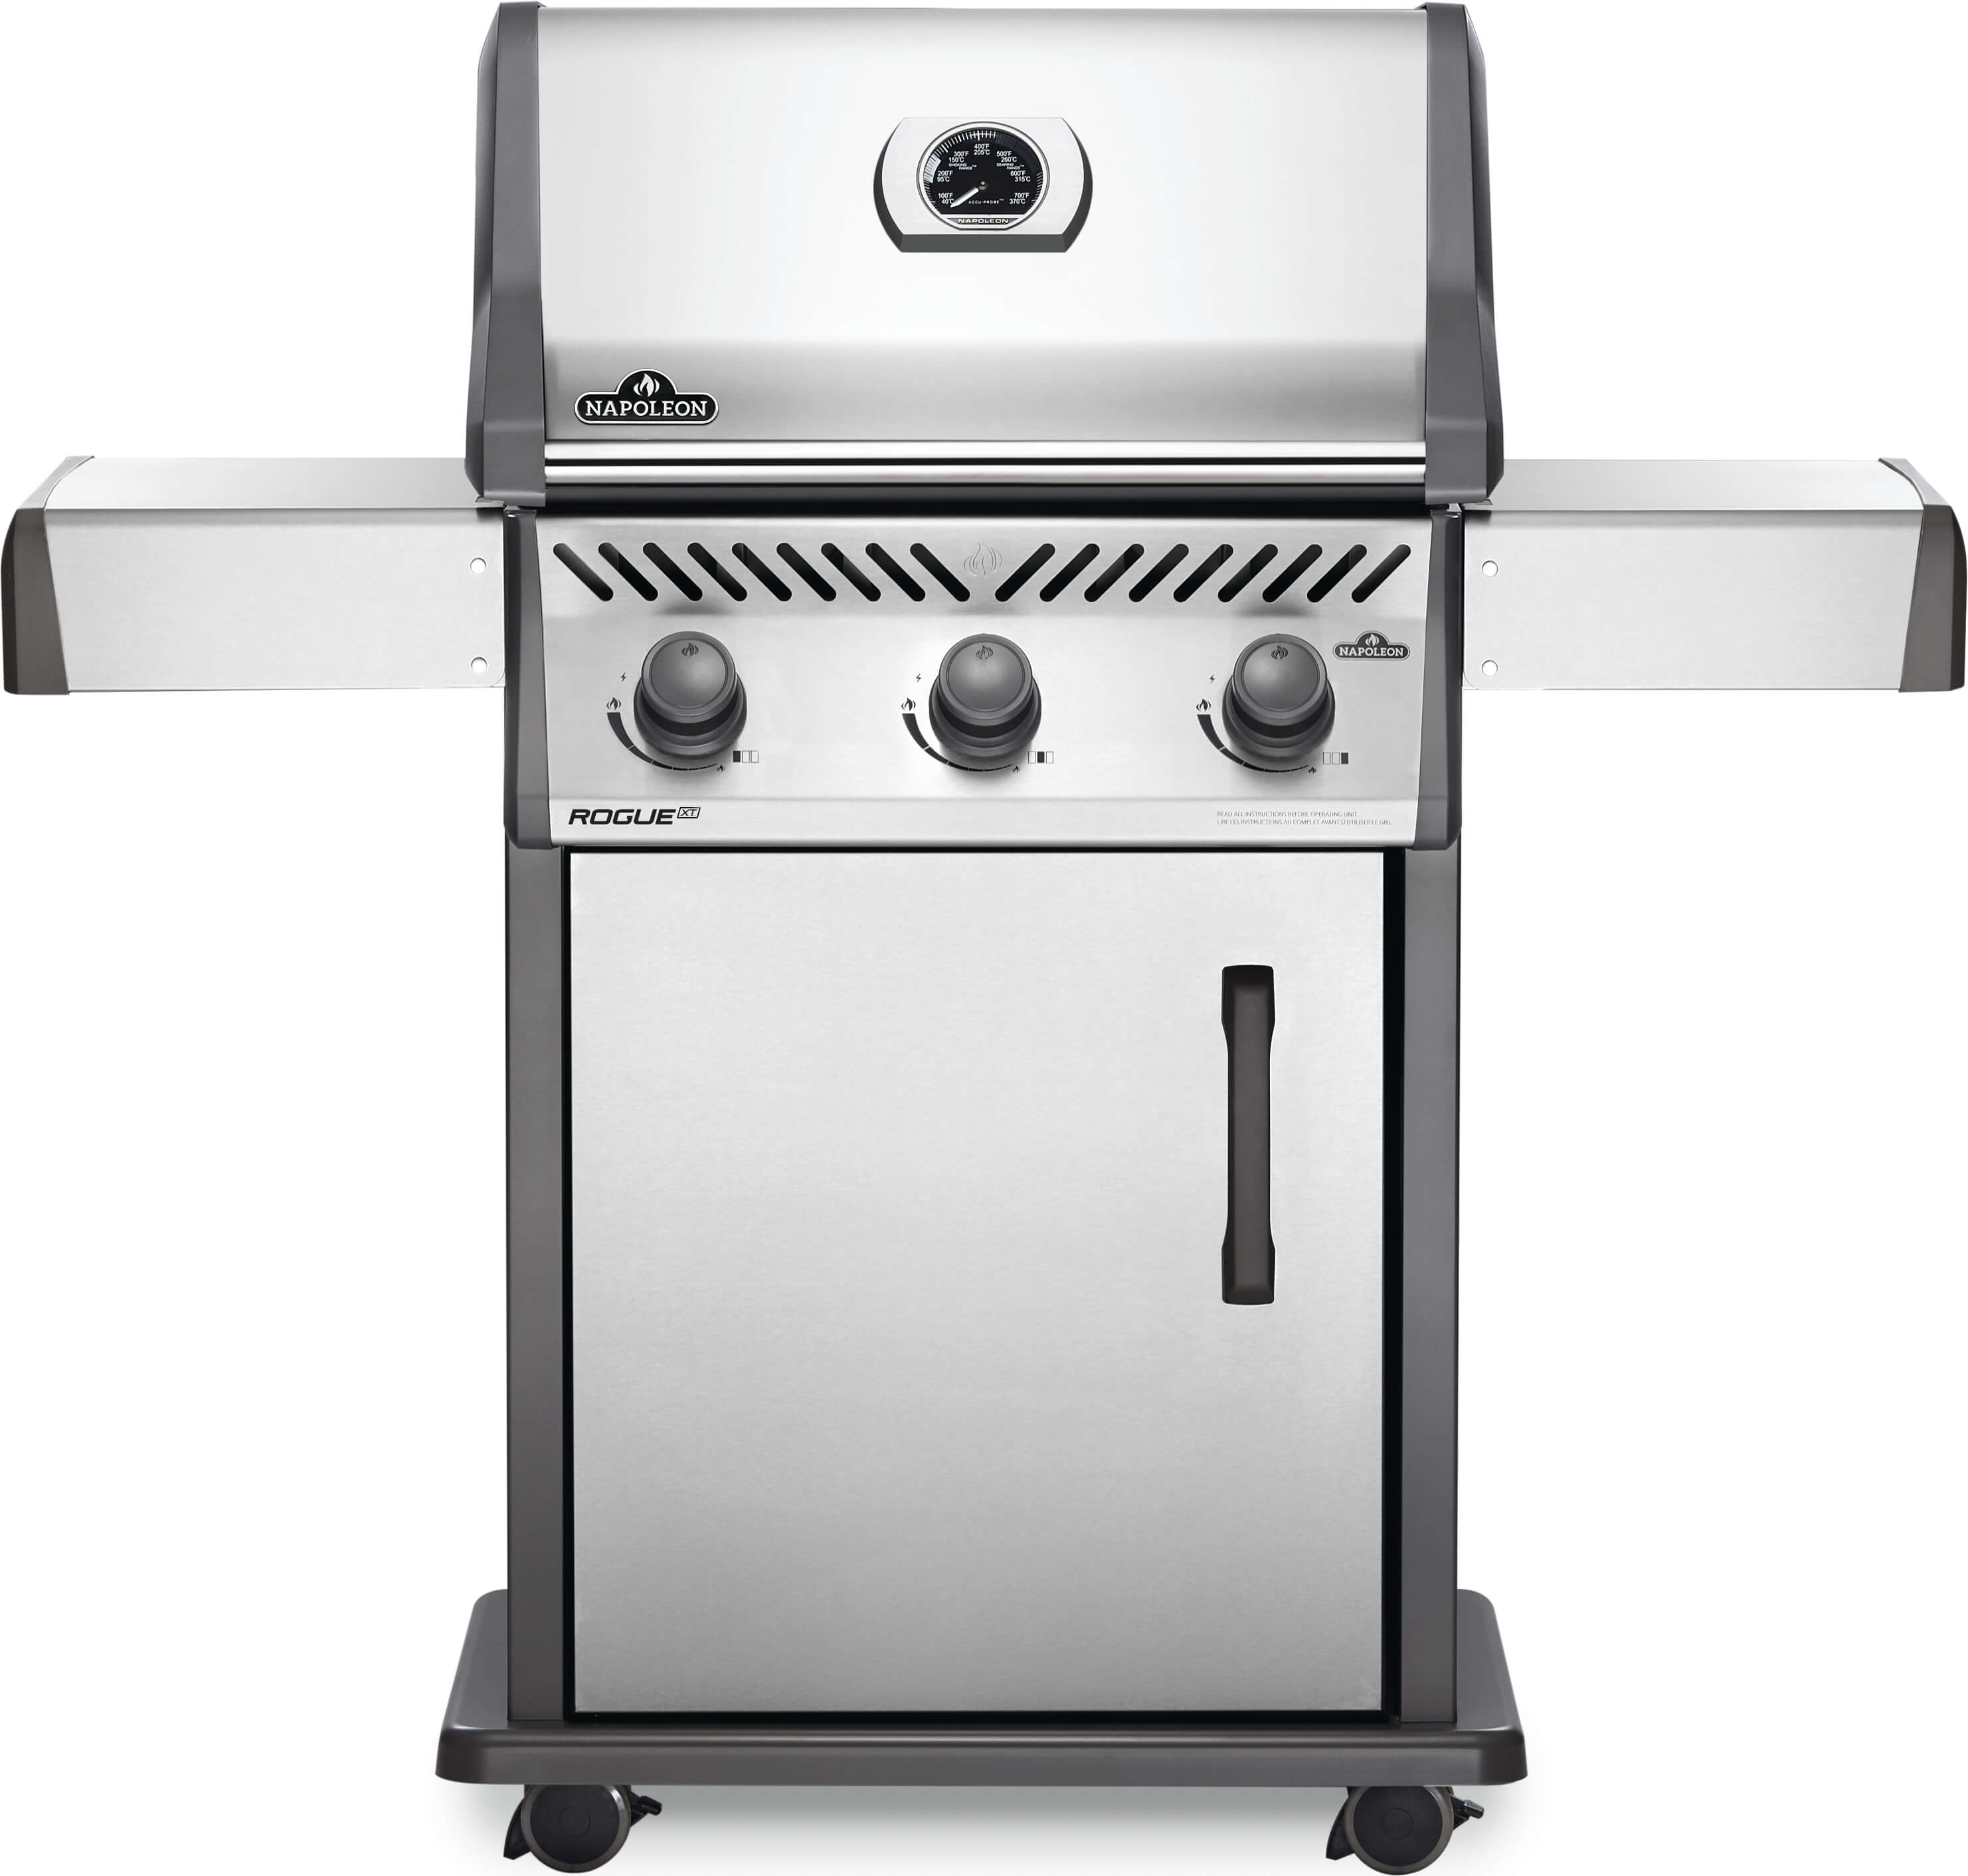 Rogue® XT 425 Propane Gas Grill, Stainless Steel